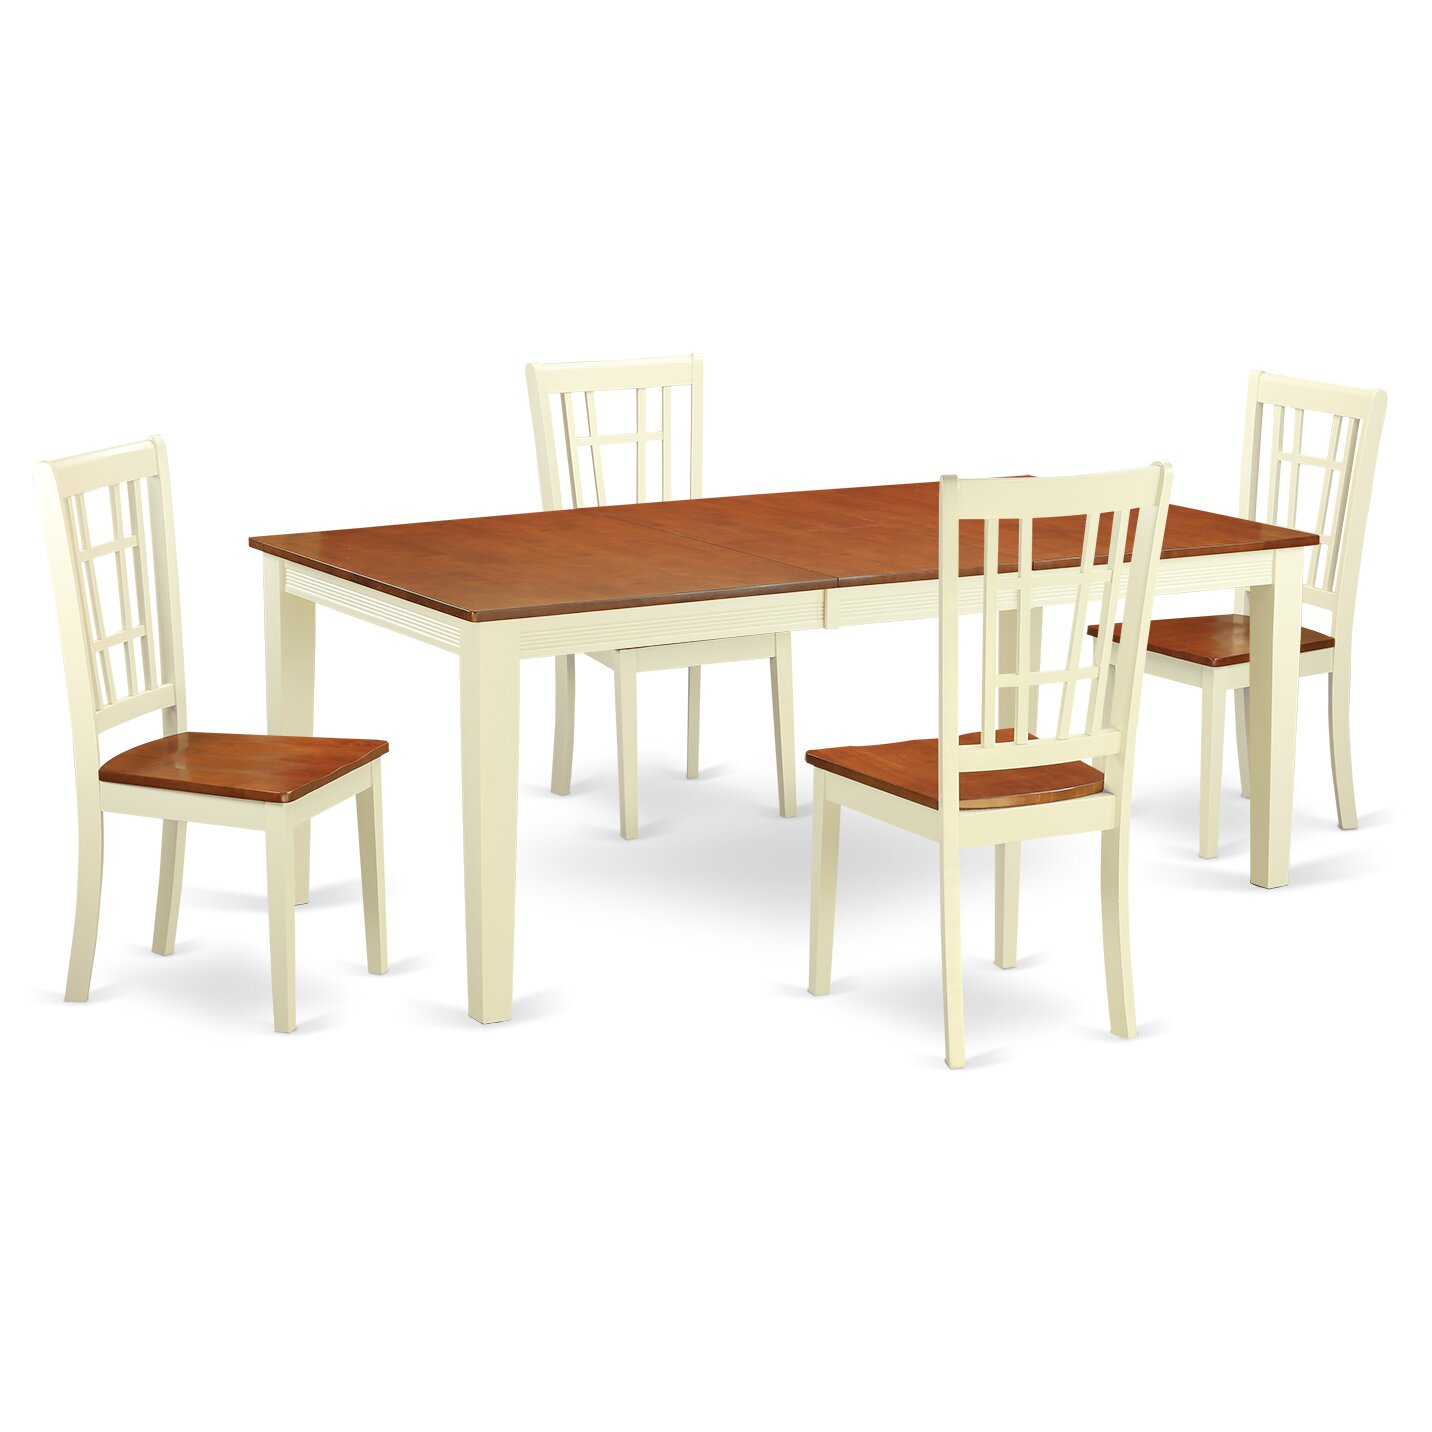 East west quincy 5 piece dining set wayfair for Small dining table and 4 chairs